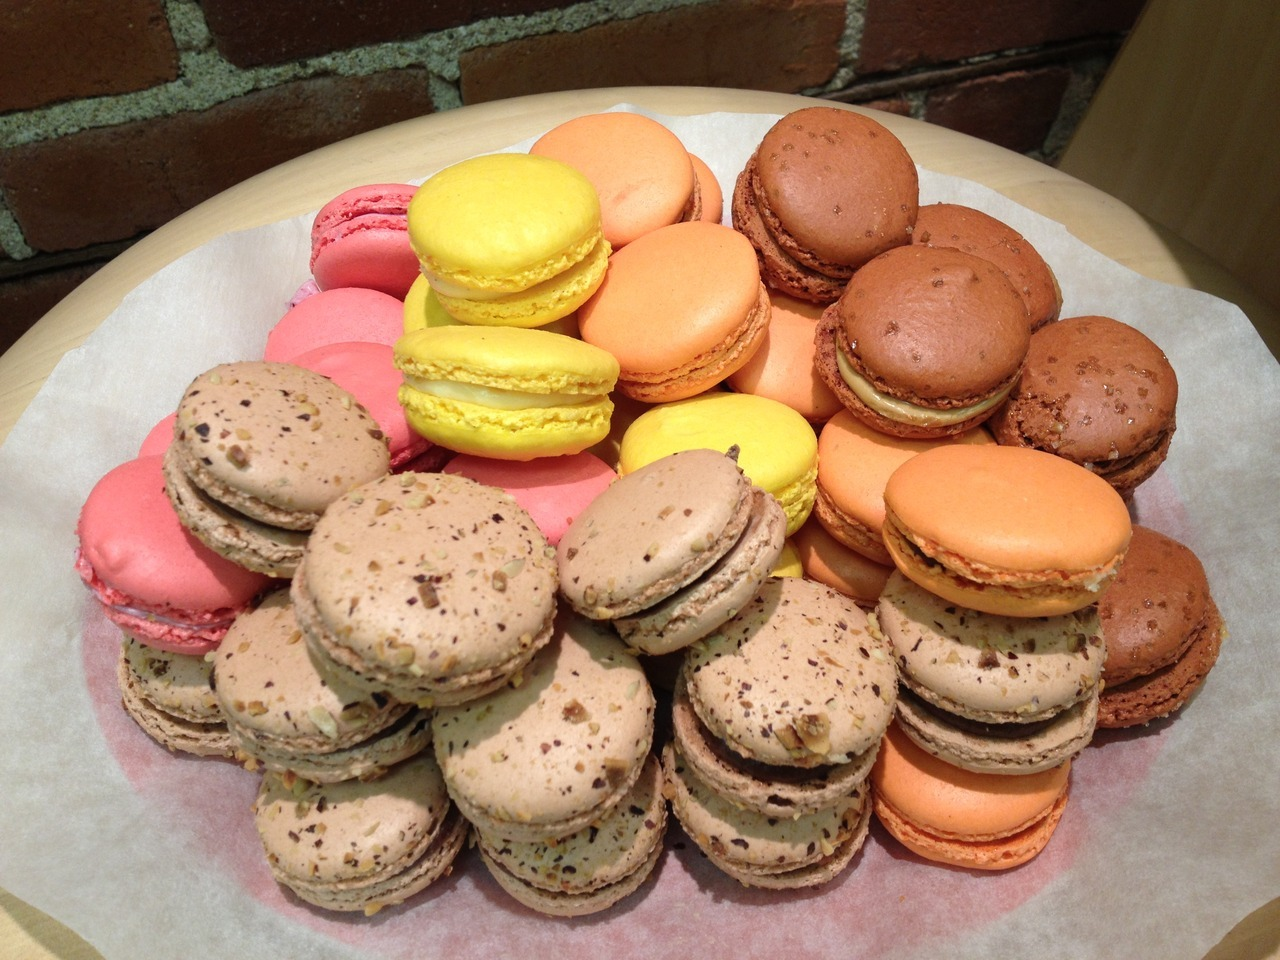 We love Masse's macaroons! Stella & Dot Trunk Show is happening tonight—beautiful jewelry, treats and refreshments!